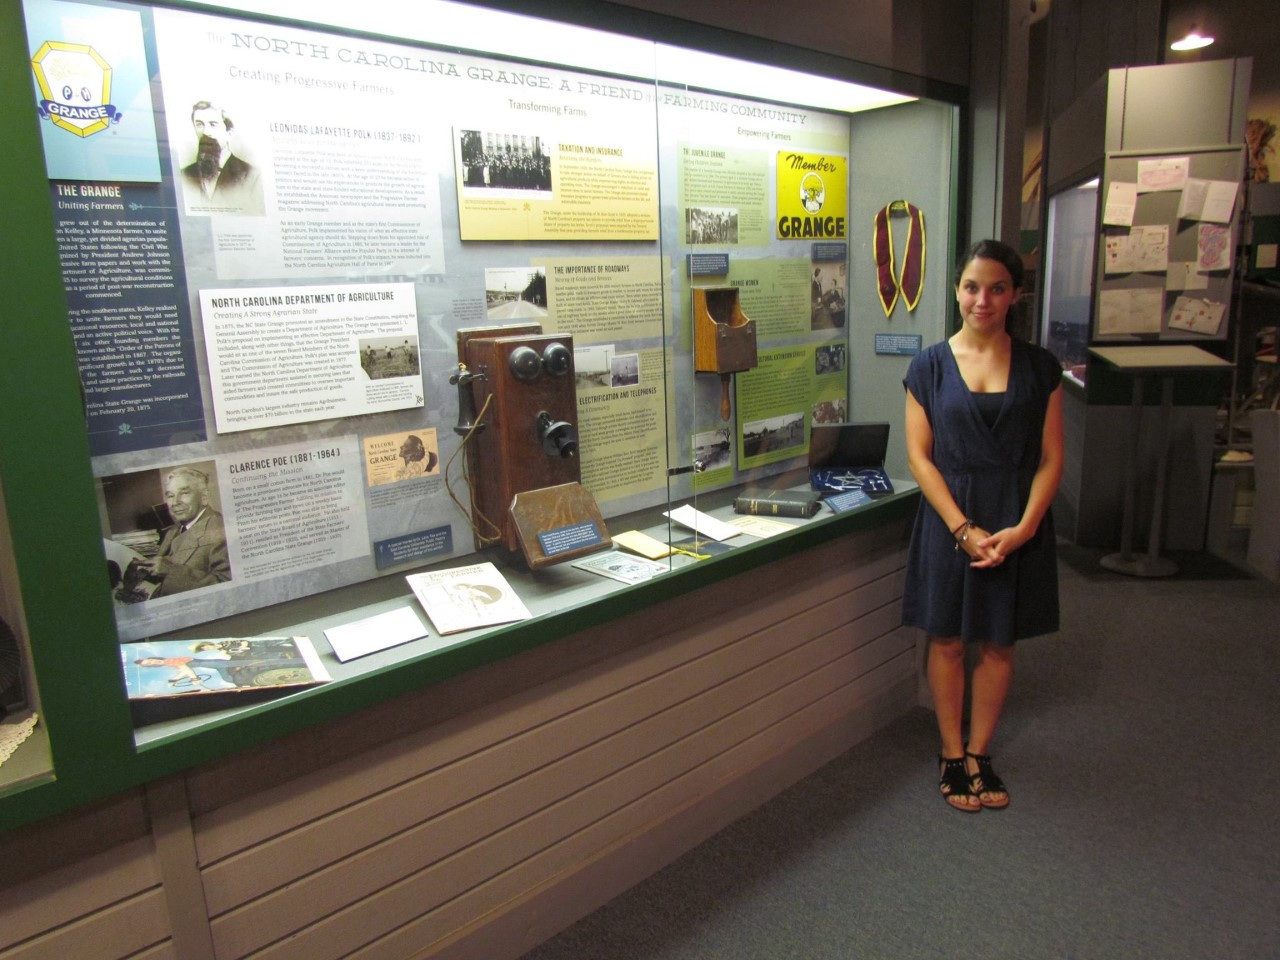 Intern standing next to exhibit